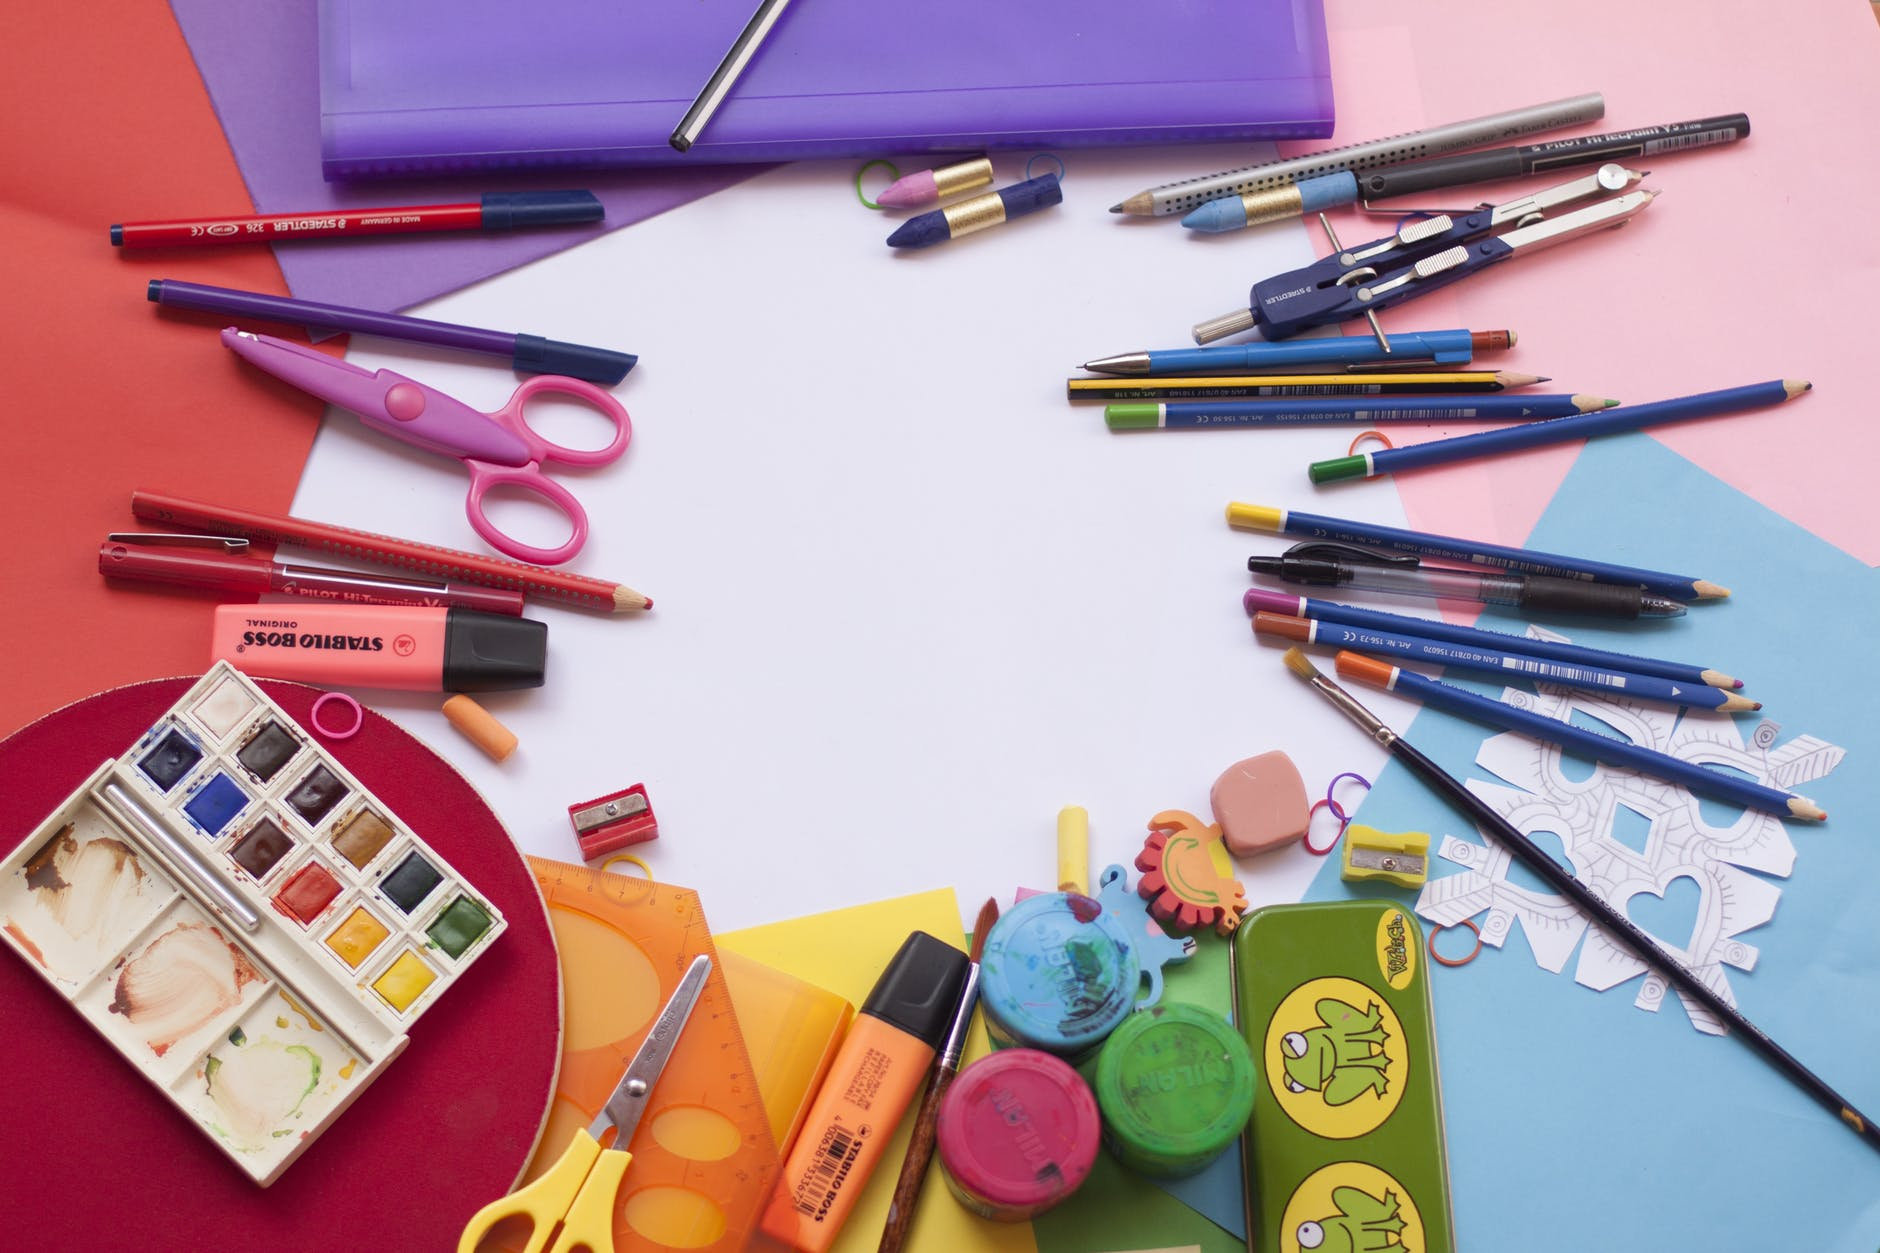 Colorful school supplies scattered on a flat surface with colorful papers on it